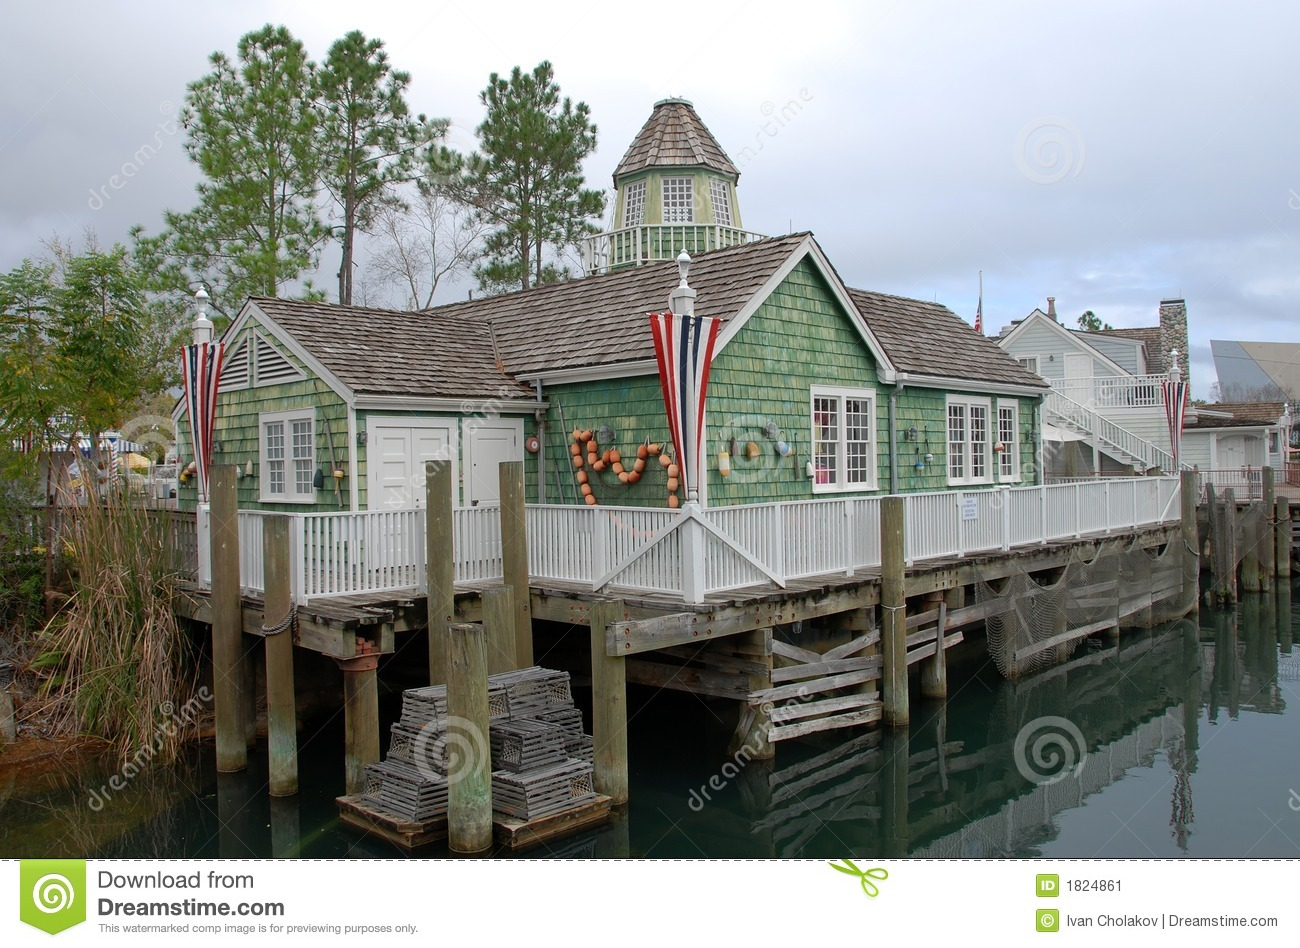 New england fishing village stock image image of town for Who sells fishing license near me